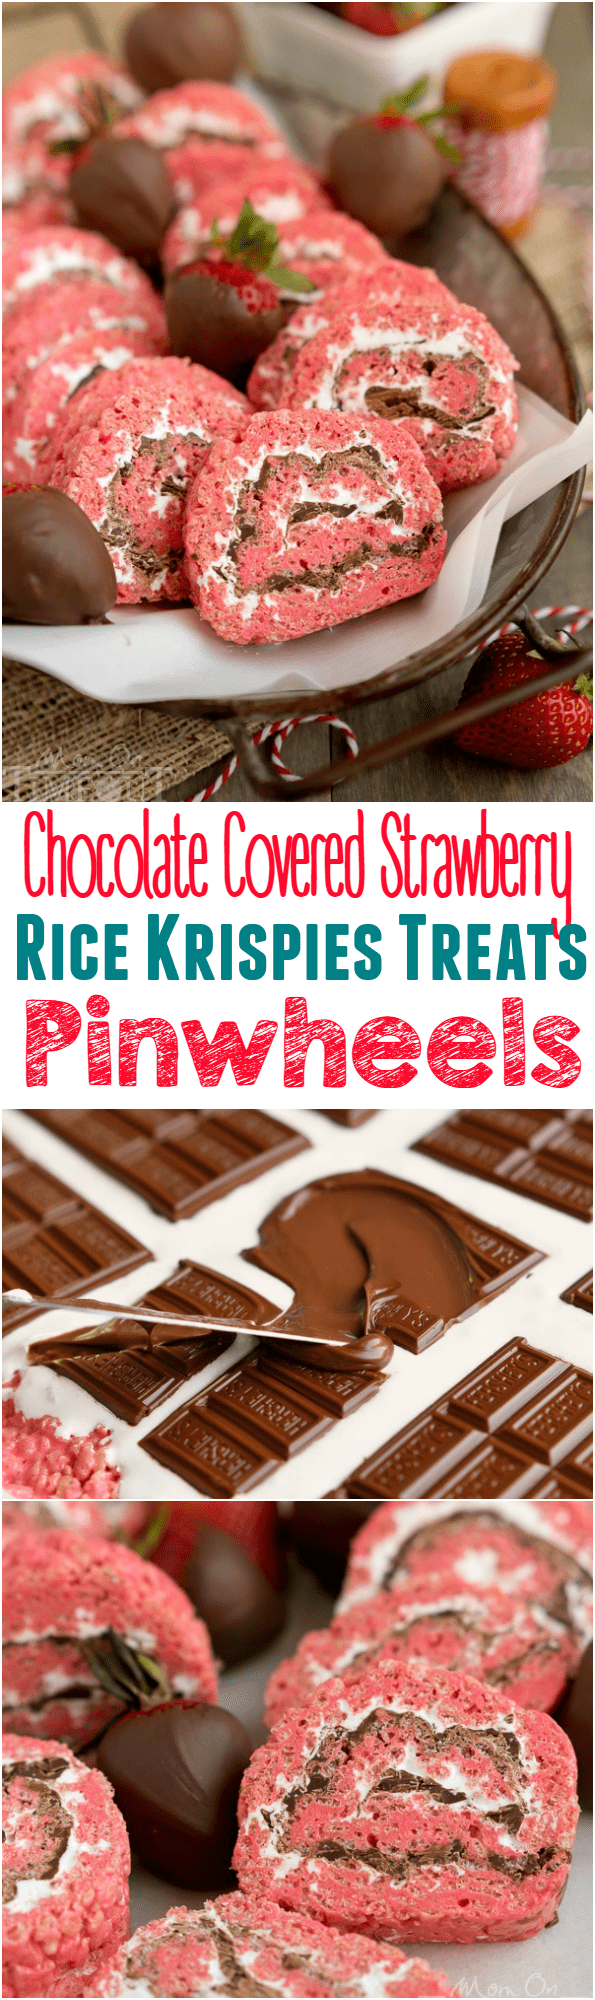 Chocolate Covered Strawberry Rice Krispies Treats Pinwheels are the perfect treat for your next party or picnic! Pretty and pink and so yummy to eat, this easy dessert is guaranteed to become a new family favorite! // Mom On Timeout